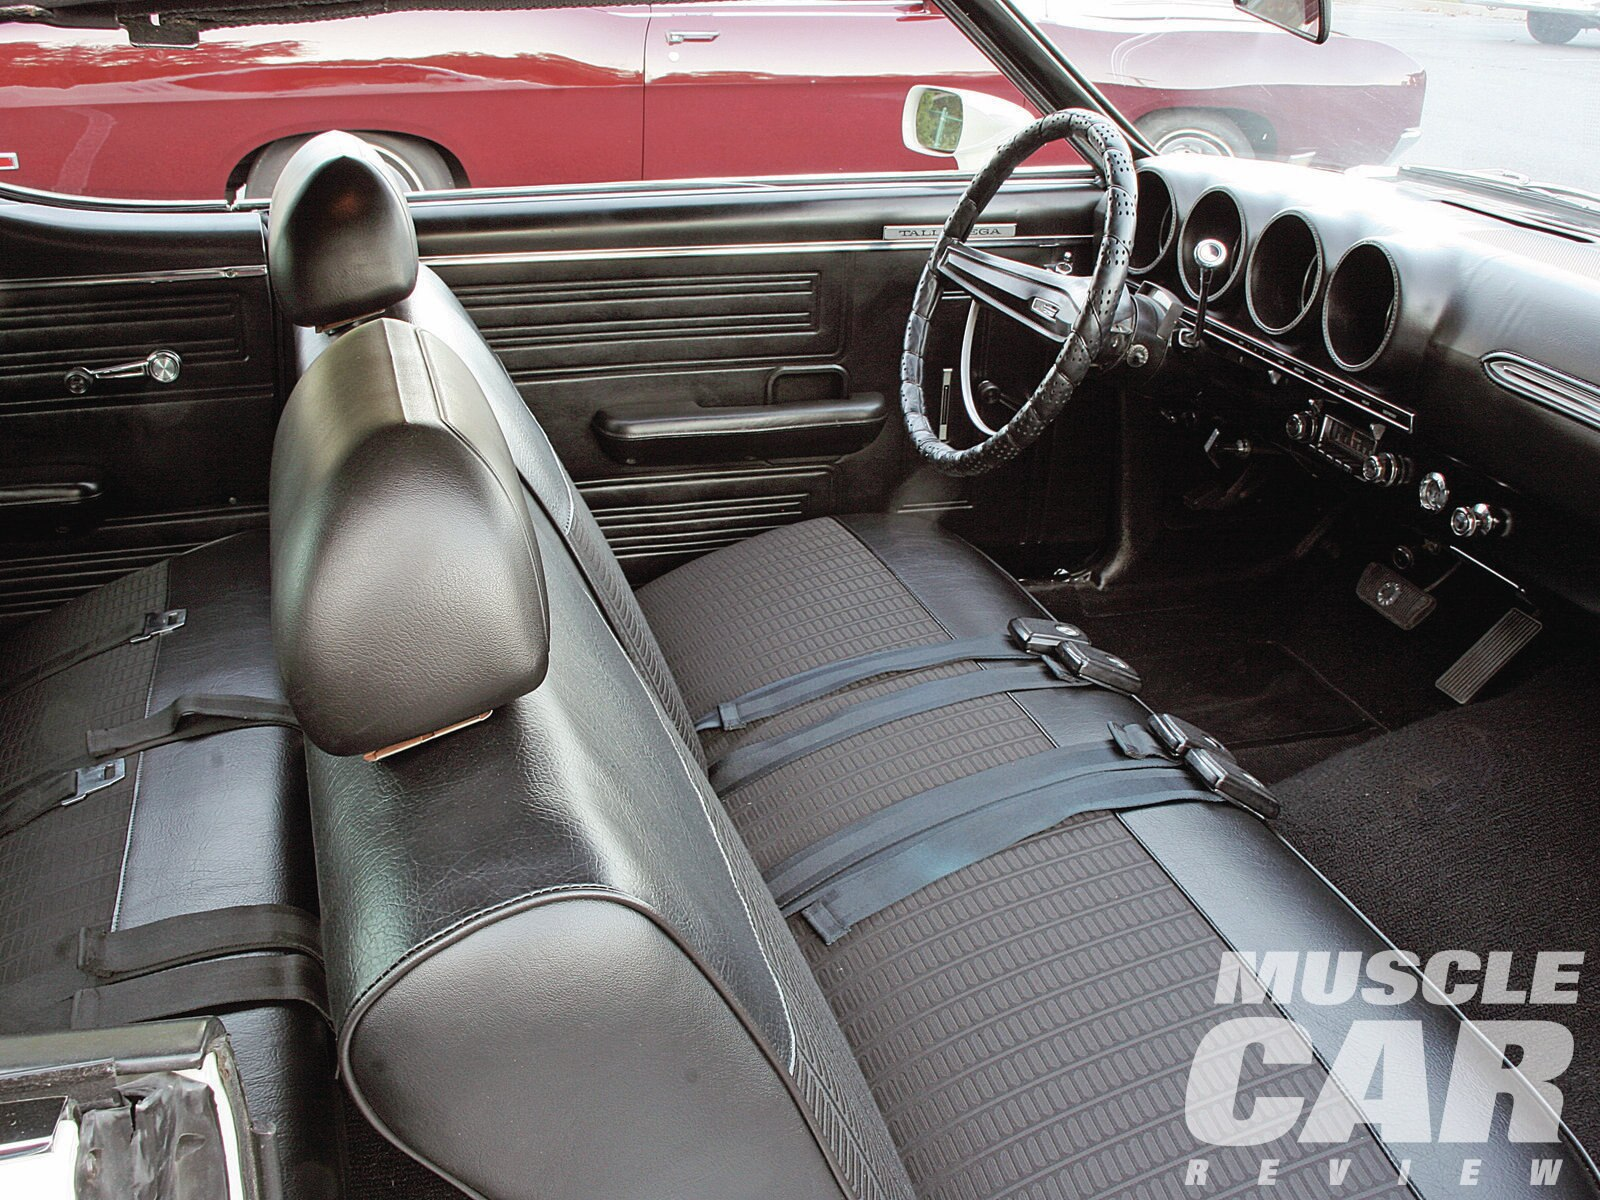 1969 ford torino talladega first production interior with black     1969 ford torino talladega first production interior with black vinyl bench seat    Hot Rod Network